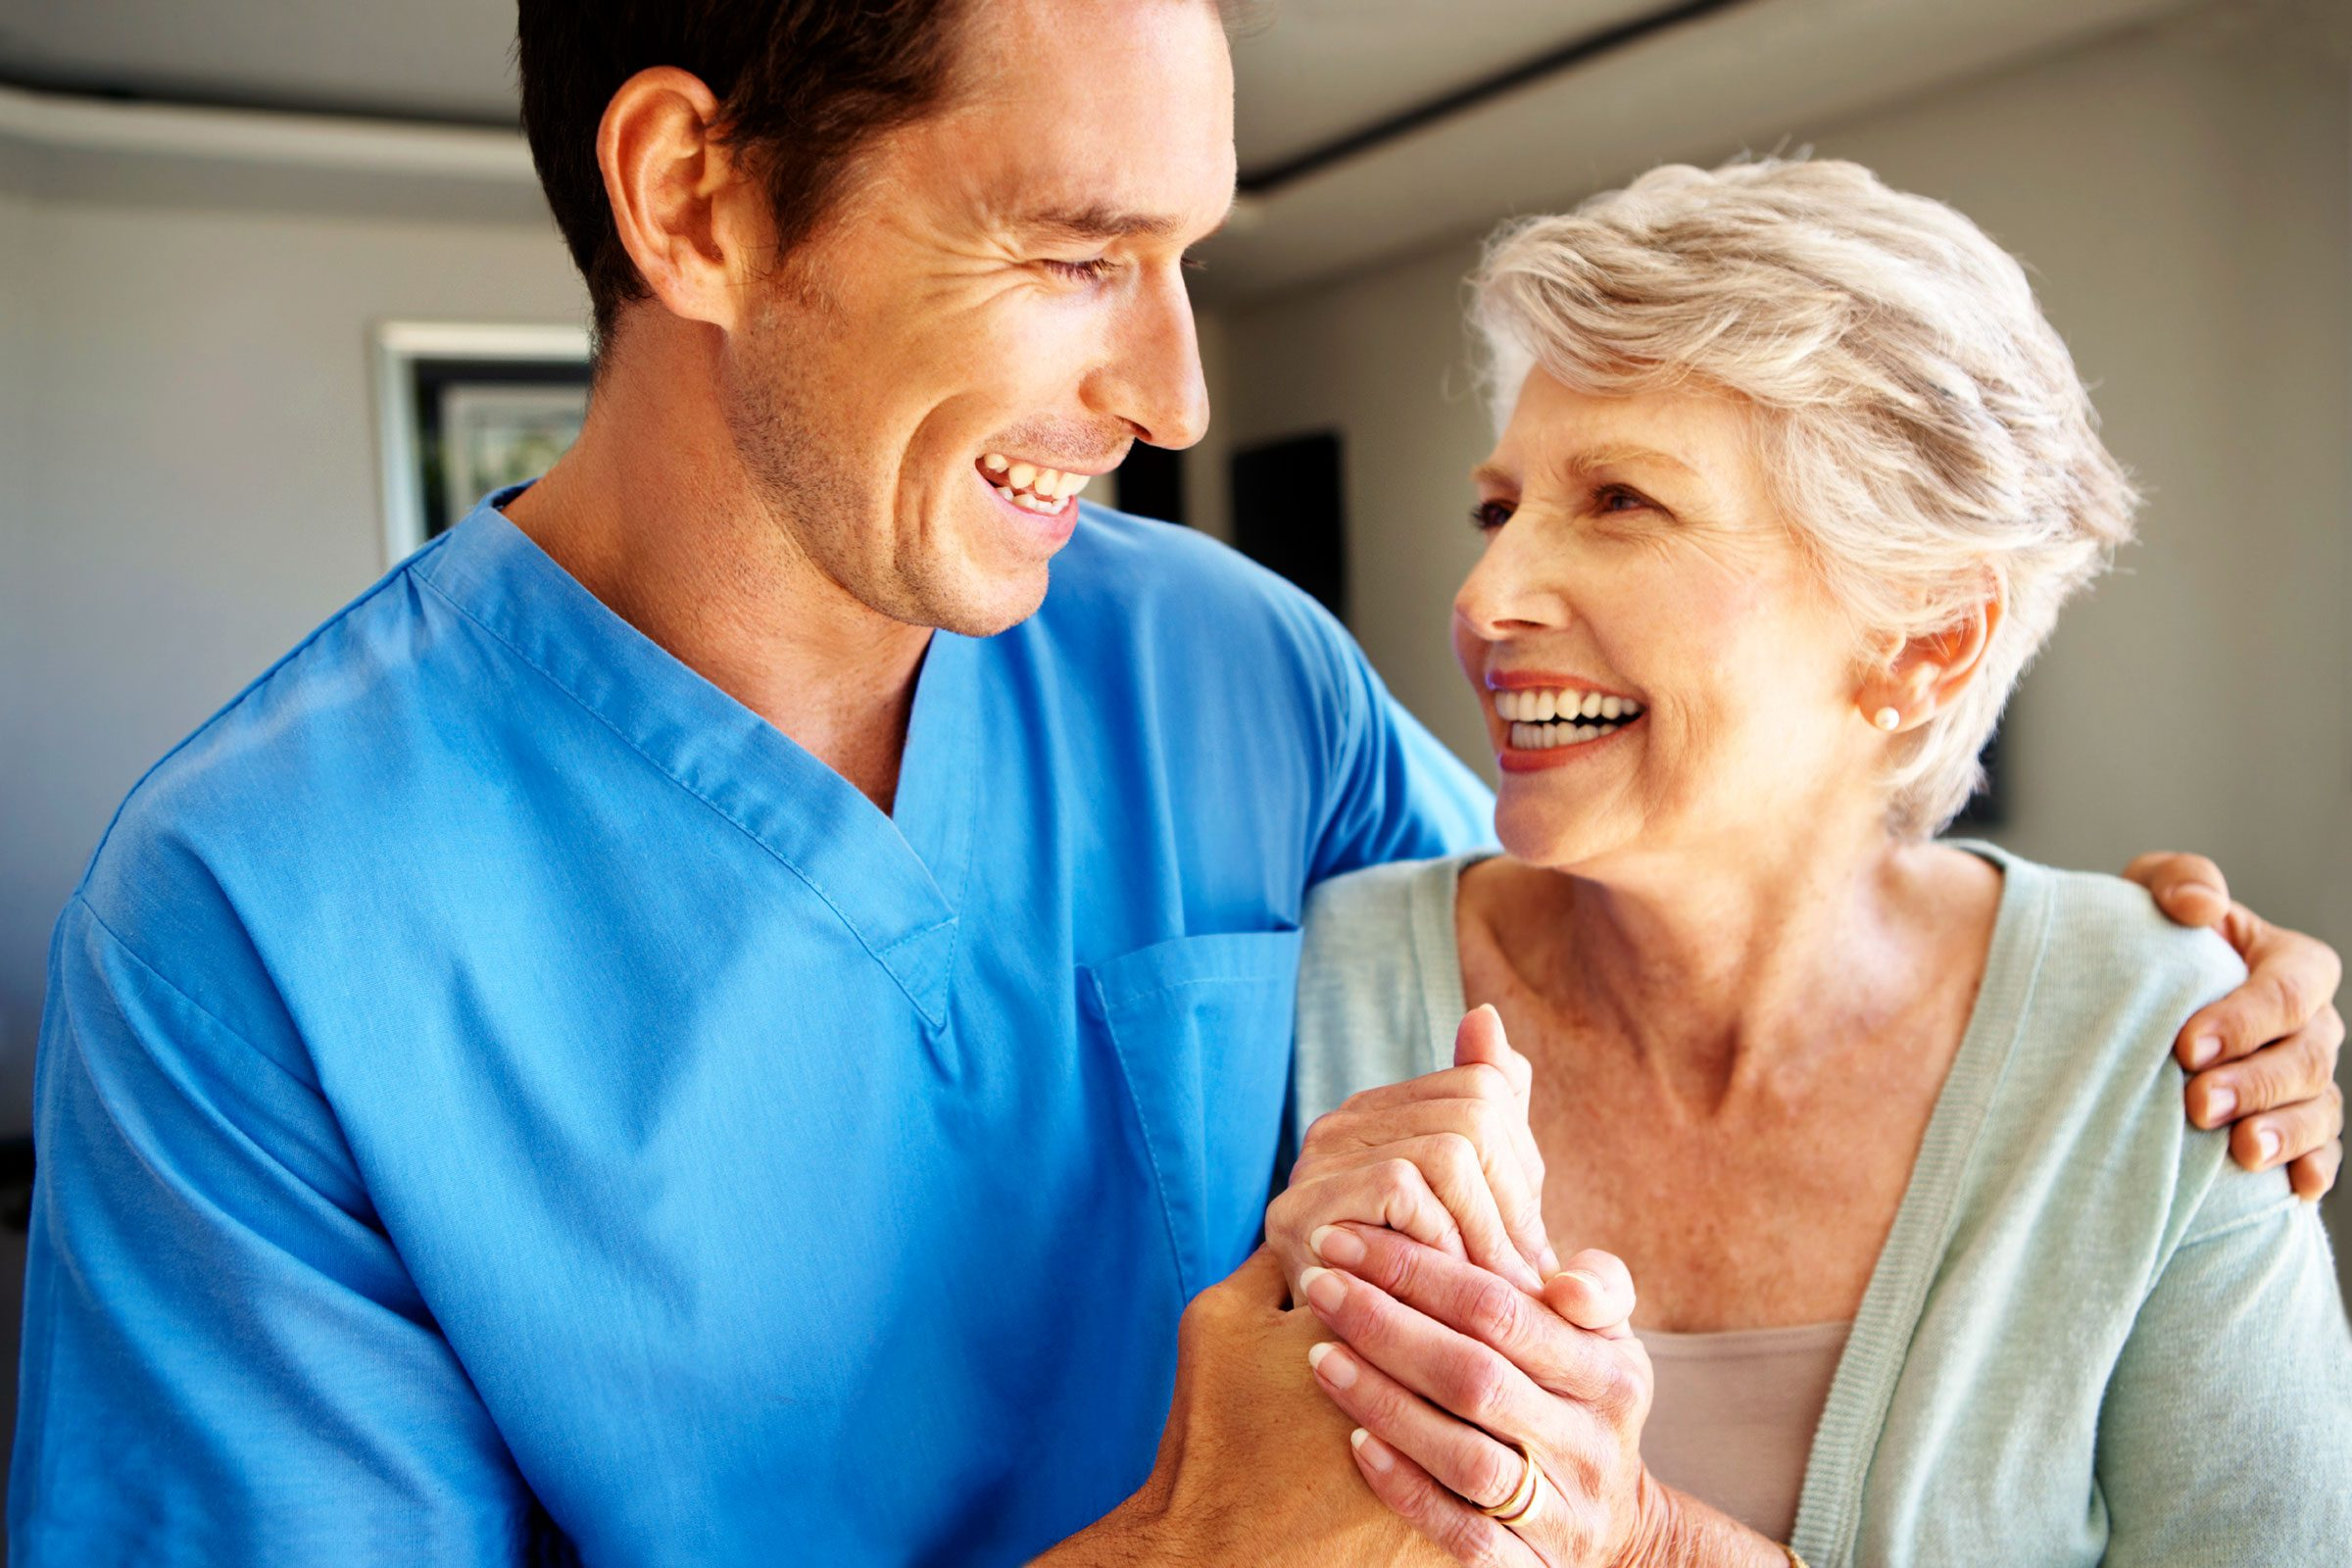 healthcare worker hugging patient